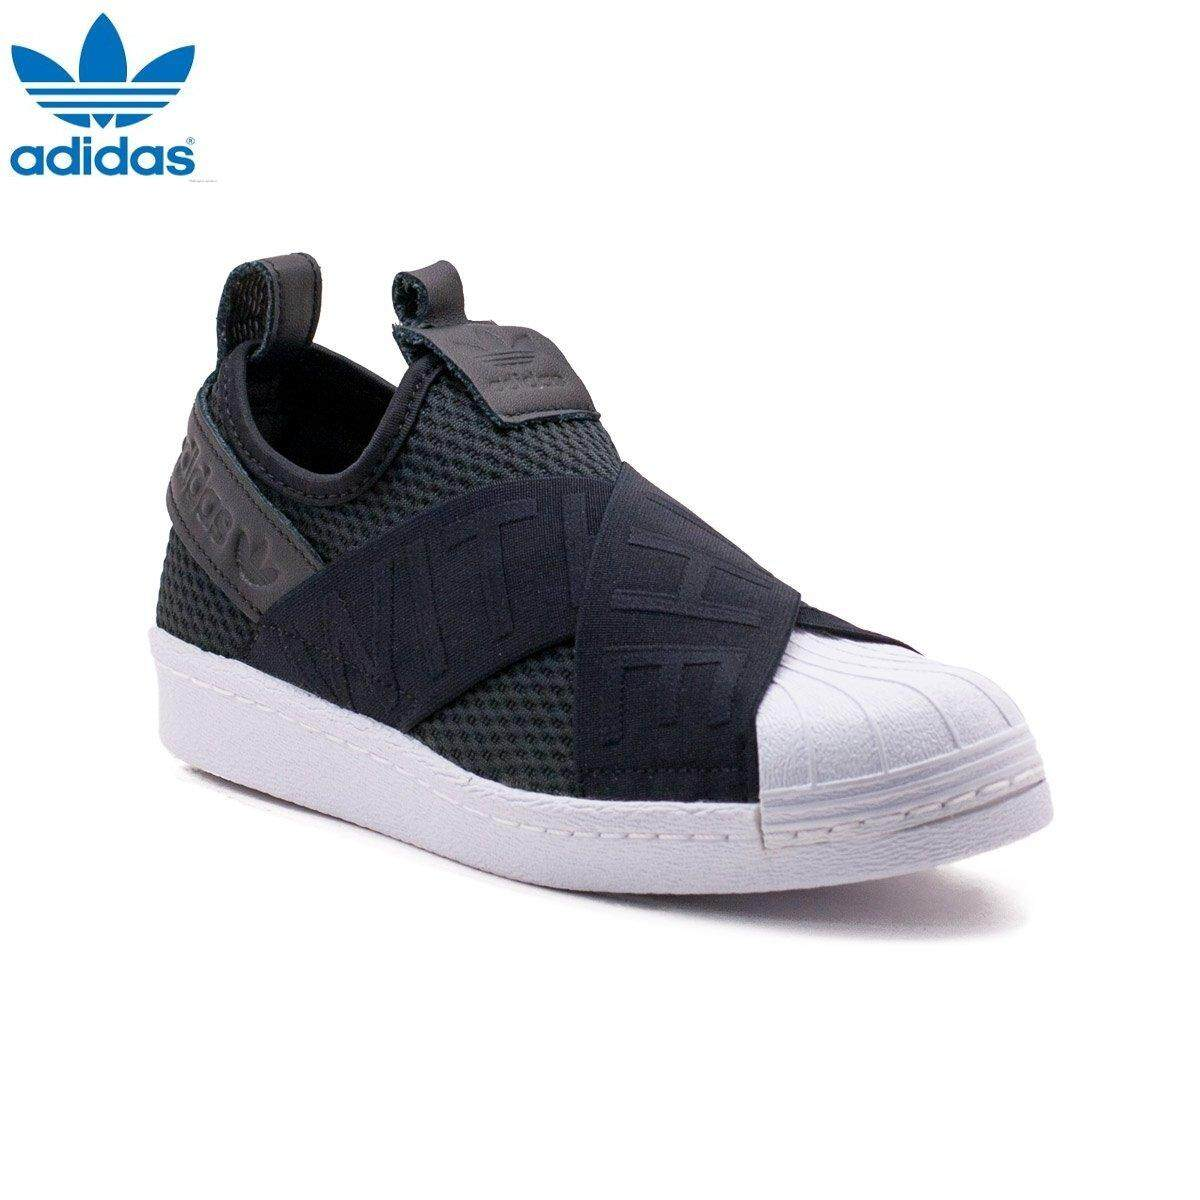 check out ee7ff 8a8db Adidas New Originals Superstar Slip-on CQ2382 (Black) Shoes